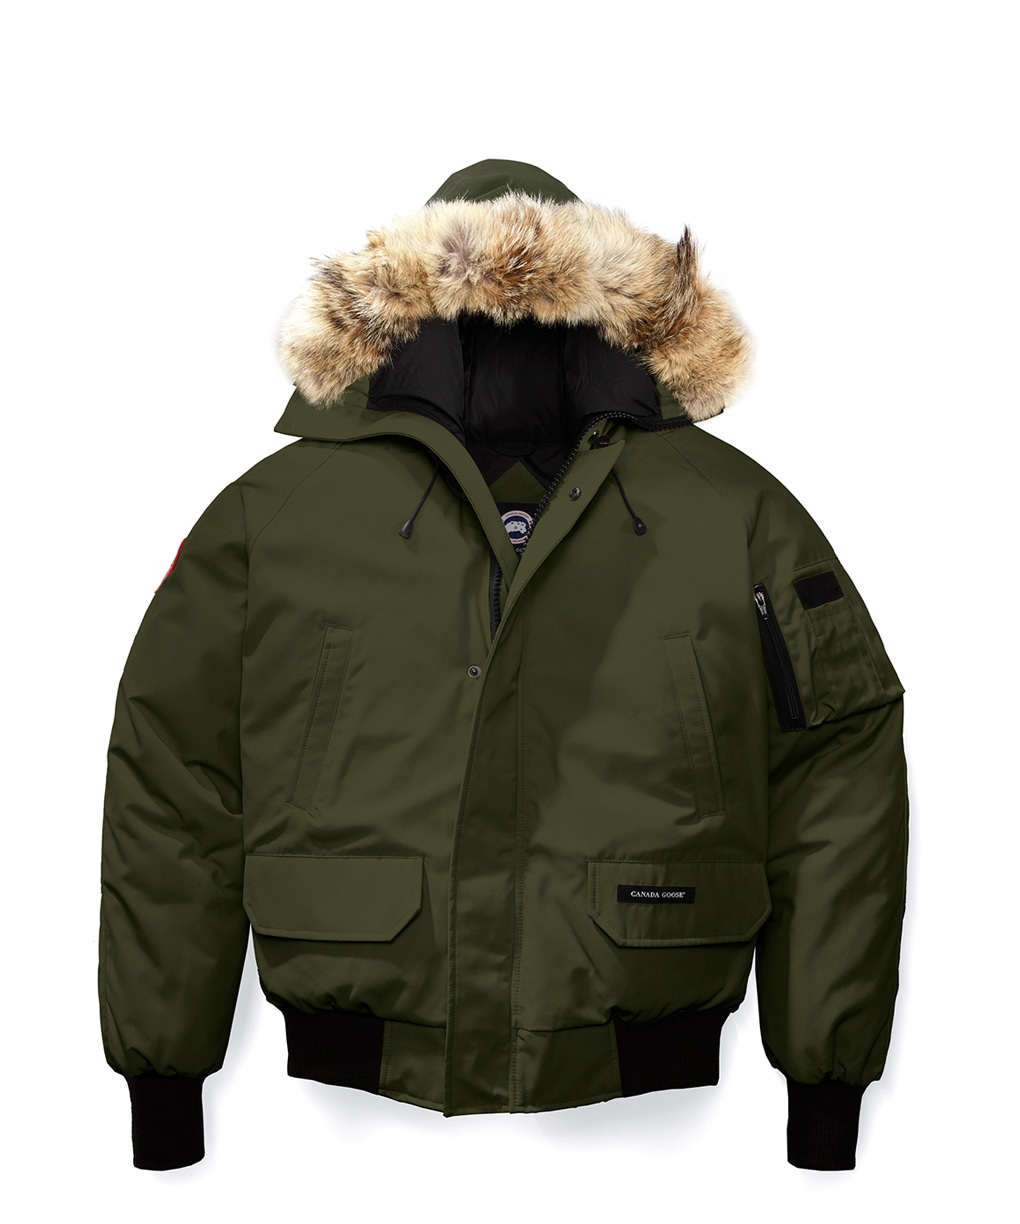 SHOP THE CHILLIWACK BOMBER (M)